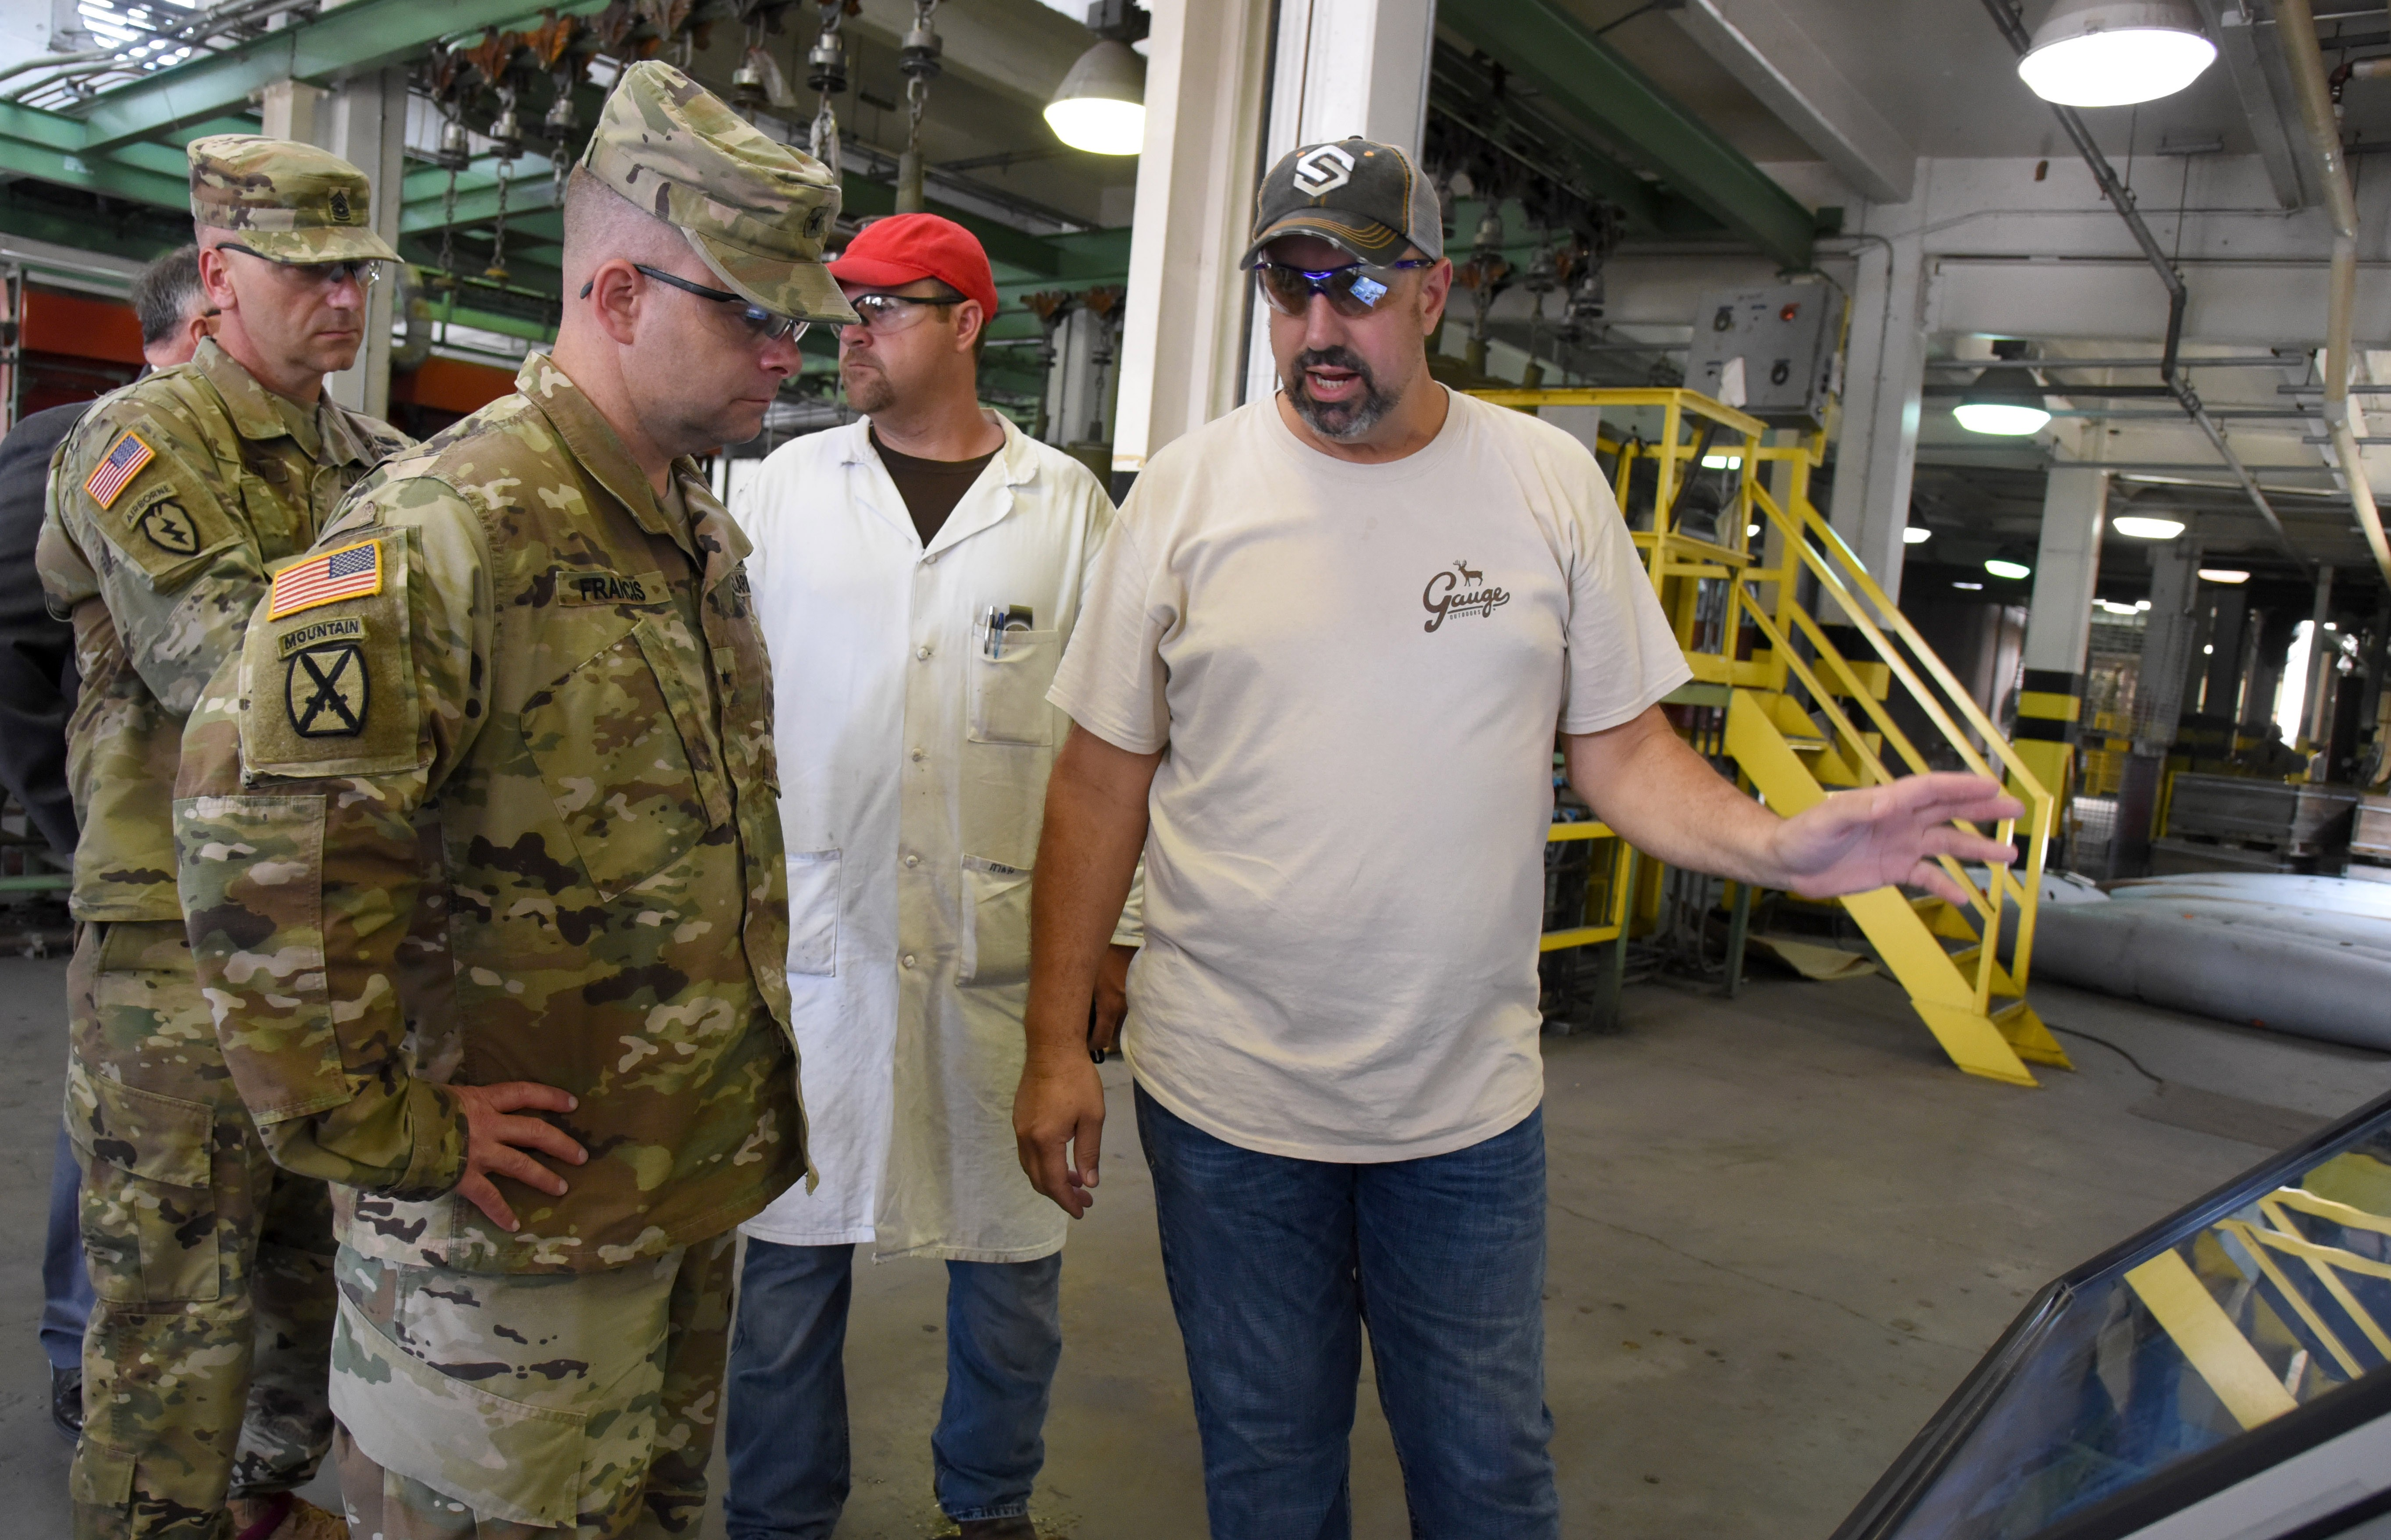 Francis' primary purpose for the visit to MCAAP was to learn about how the USACRC can partner with the U.S. Army Technical Center for Explosives Safety to ...